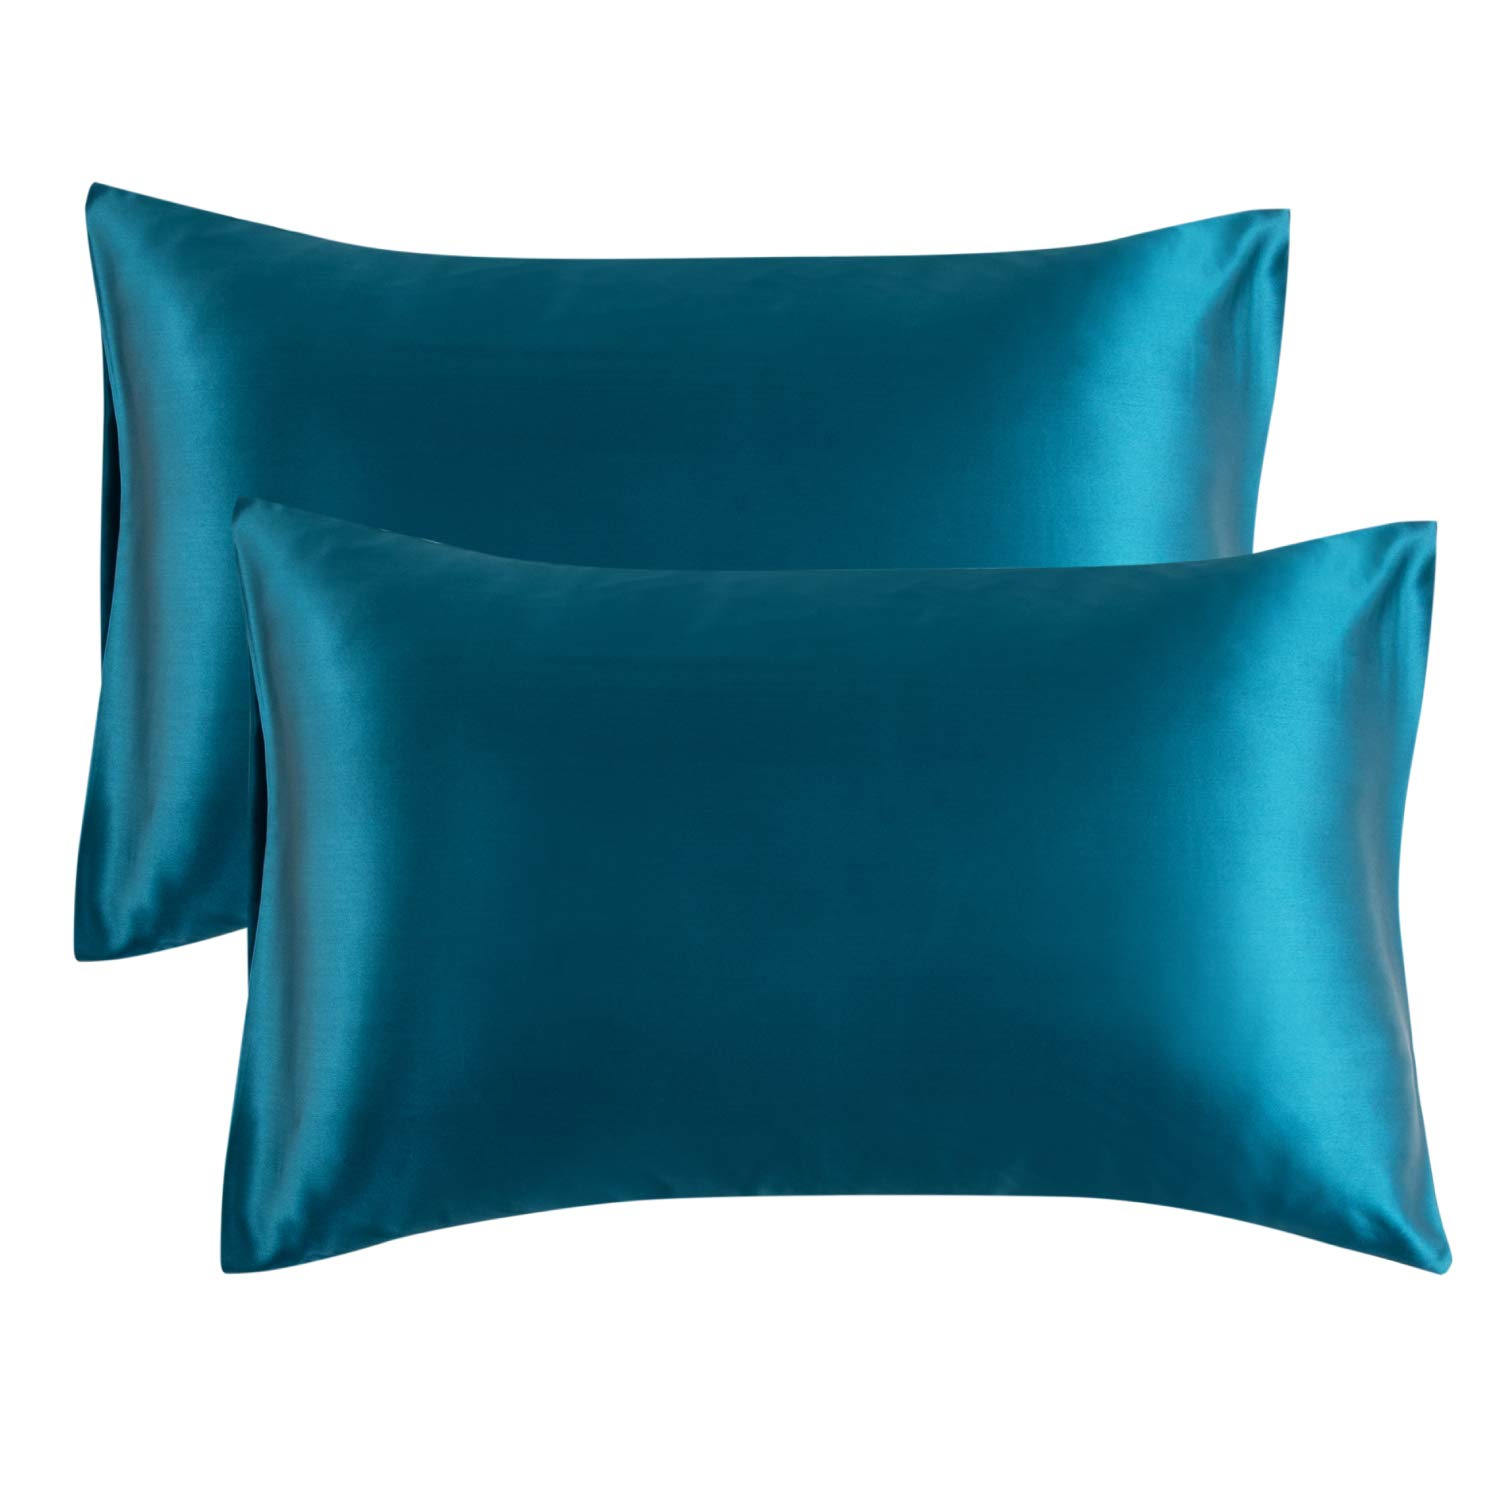 Bedsure Satin Pillowcase for Hair and Skin 2Pack  Standard Size 20x26 inches Pillow Cases  Satin